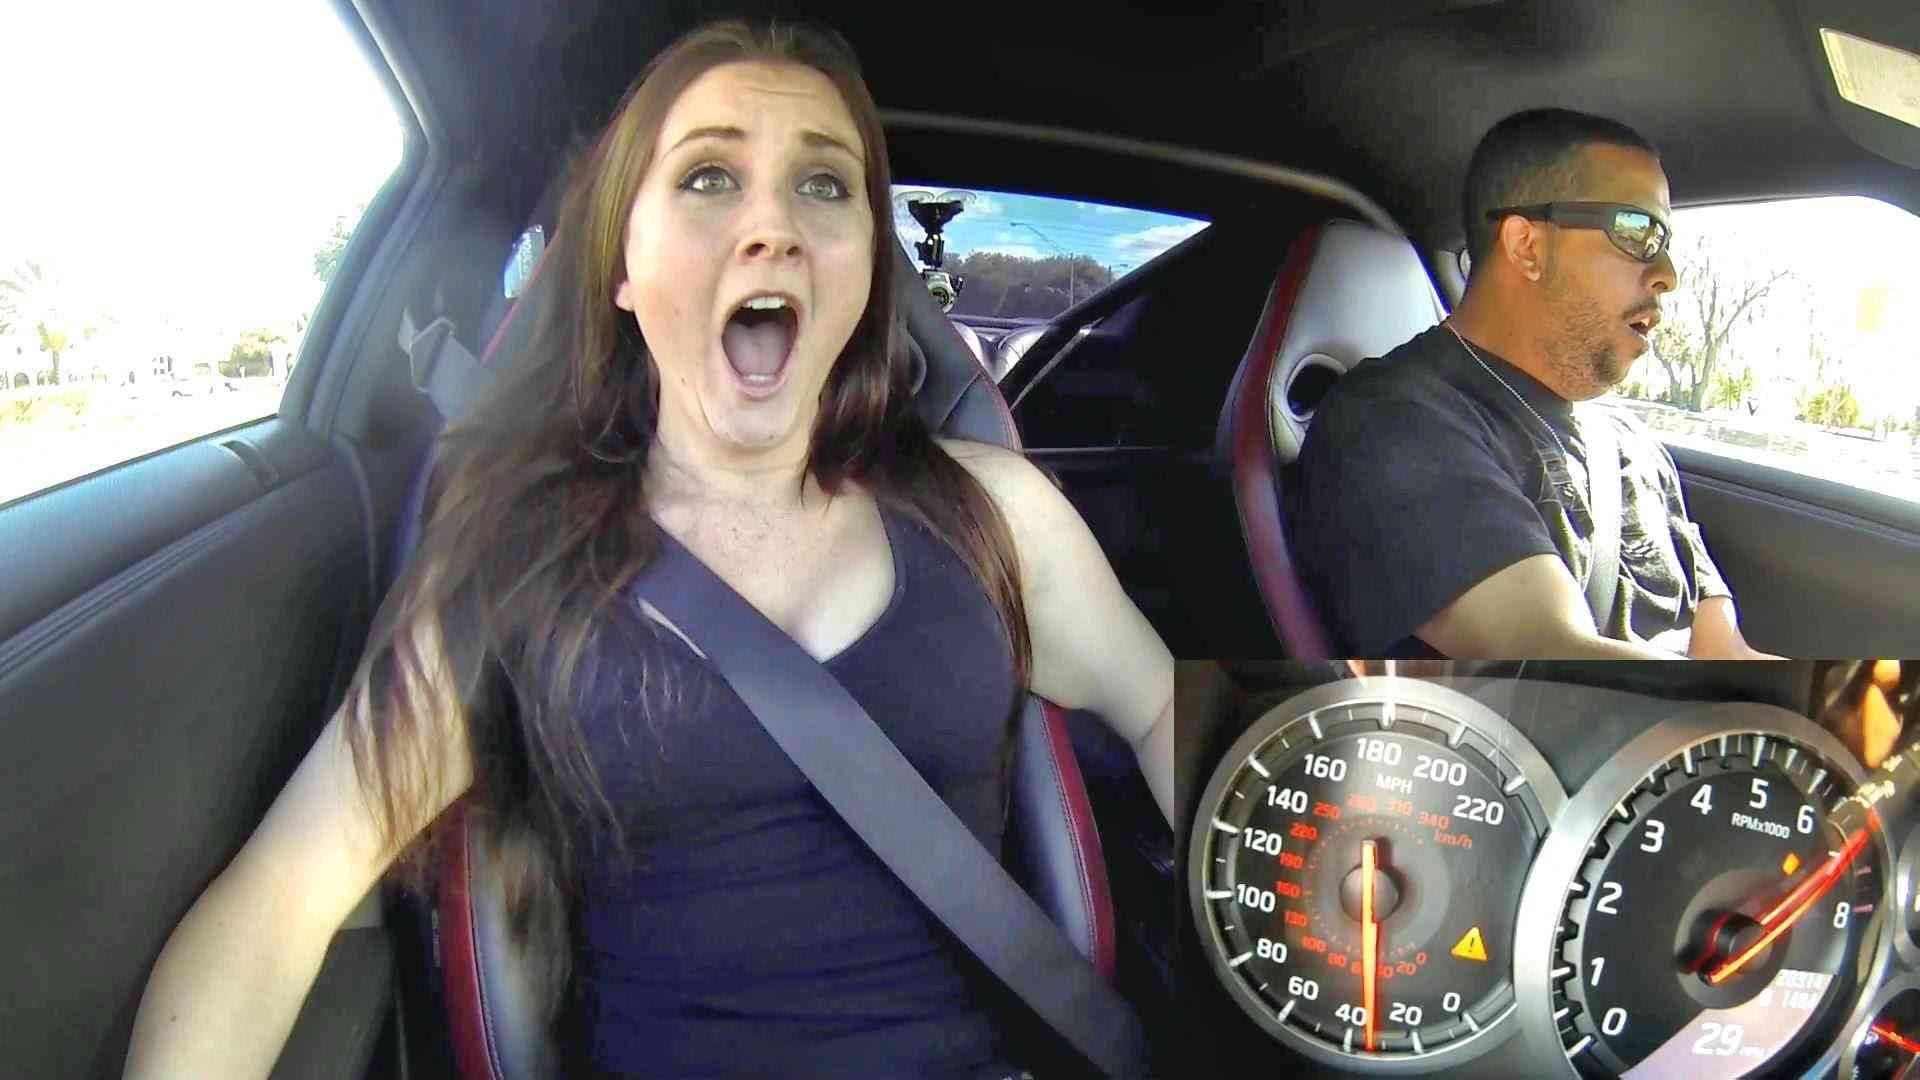 Nissan GTR 900hp: four girls reactions - YouTube